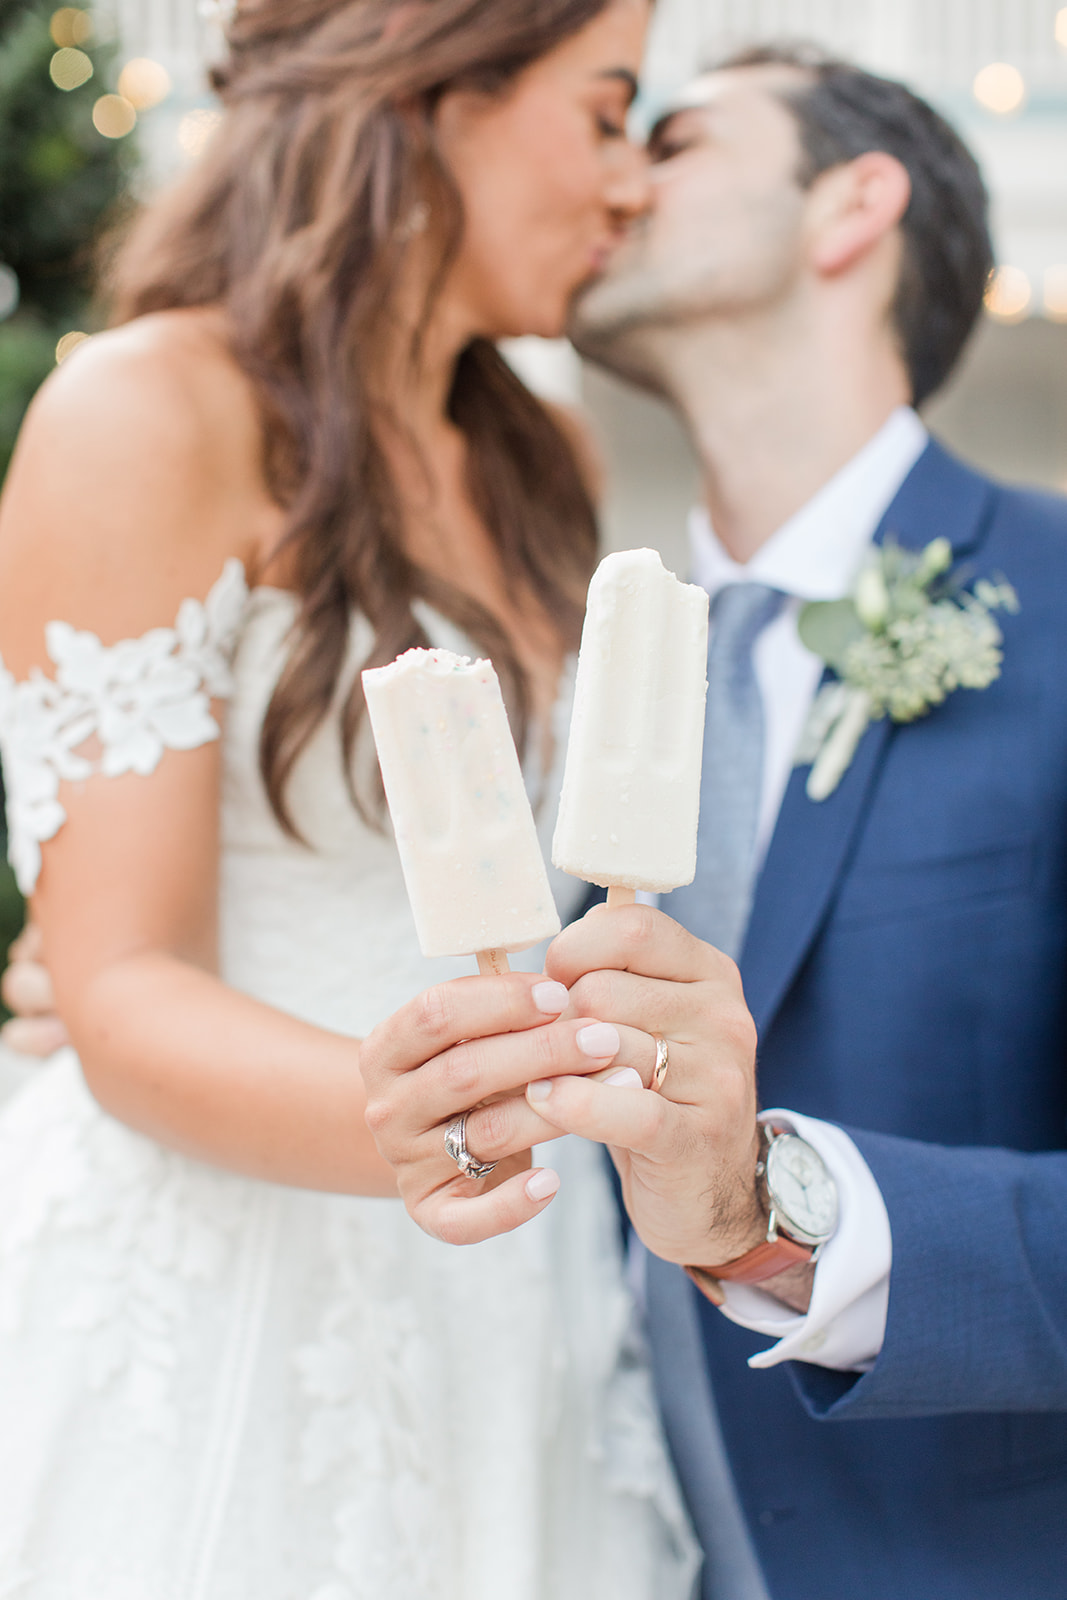 bride and groom hold popsicles, showing off wedding rings